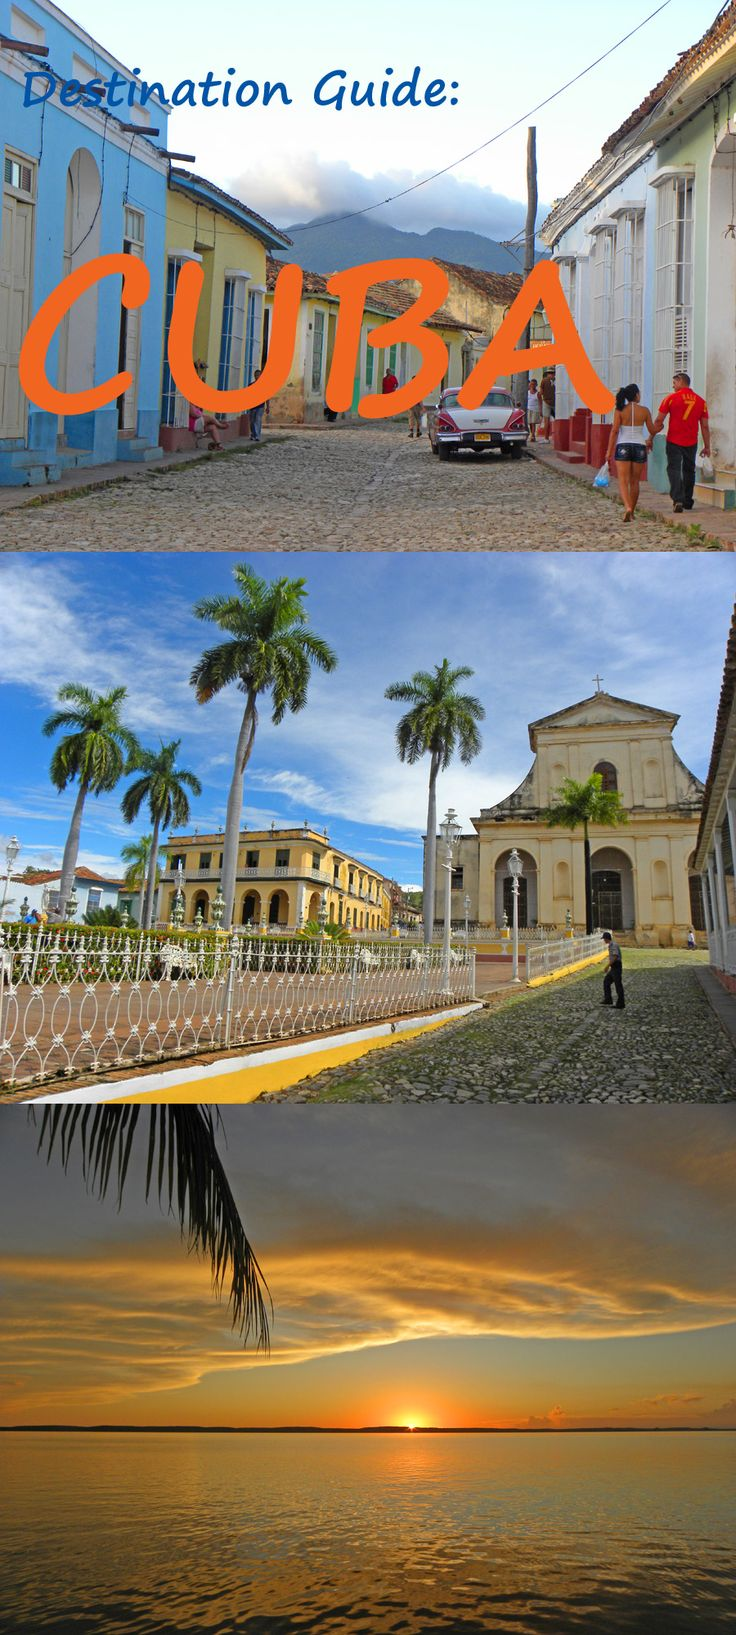 Destination Guide - Cuba. What you need to know and where to go: http://bbqboy.net/cuba-guide-and-travel-tips/ #cuba #destinationguide